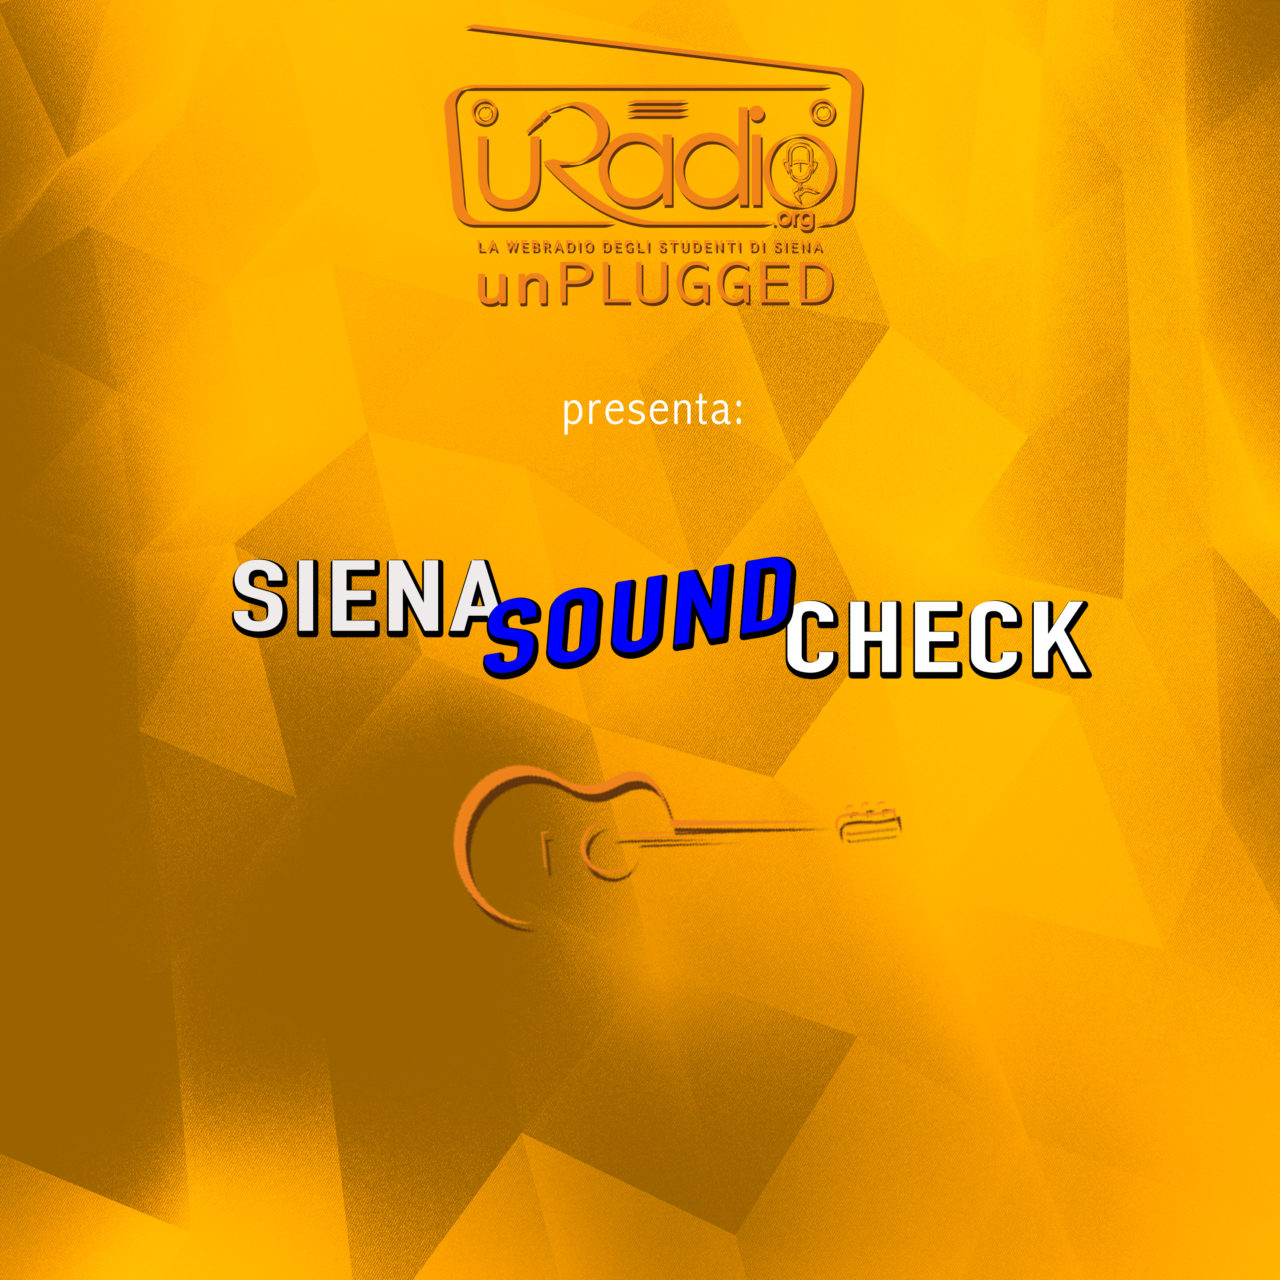 uRadio Unplugged Siena Soundcheck